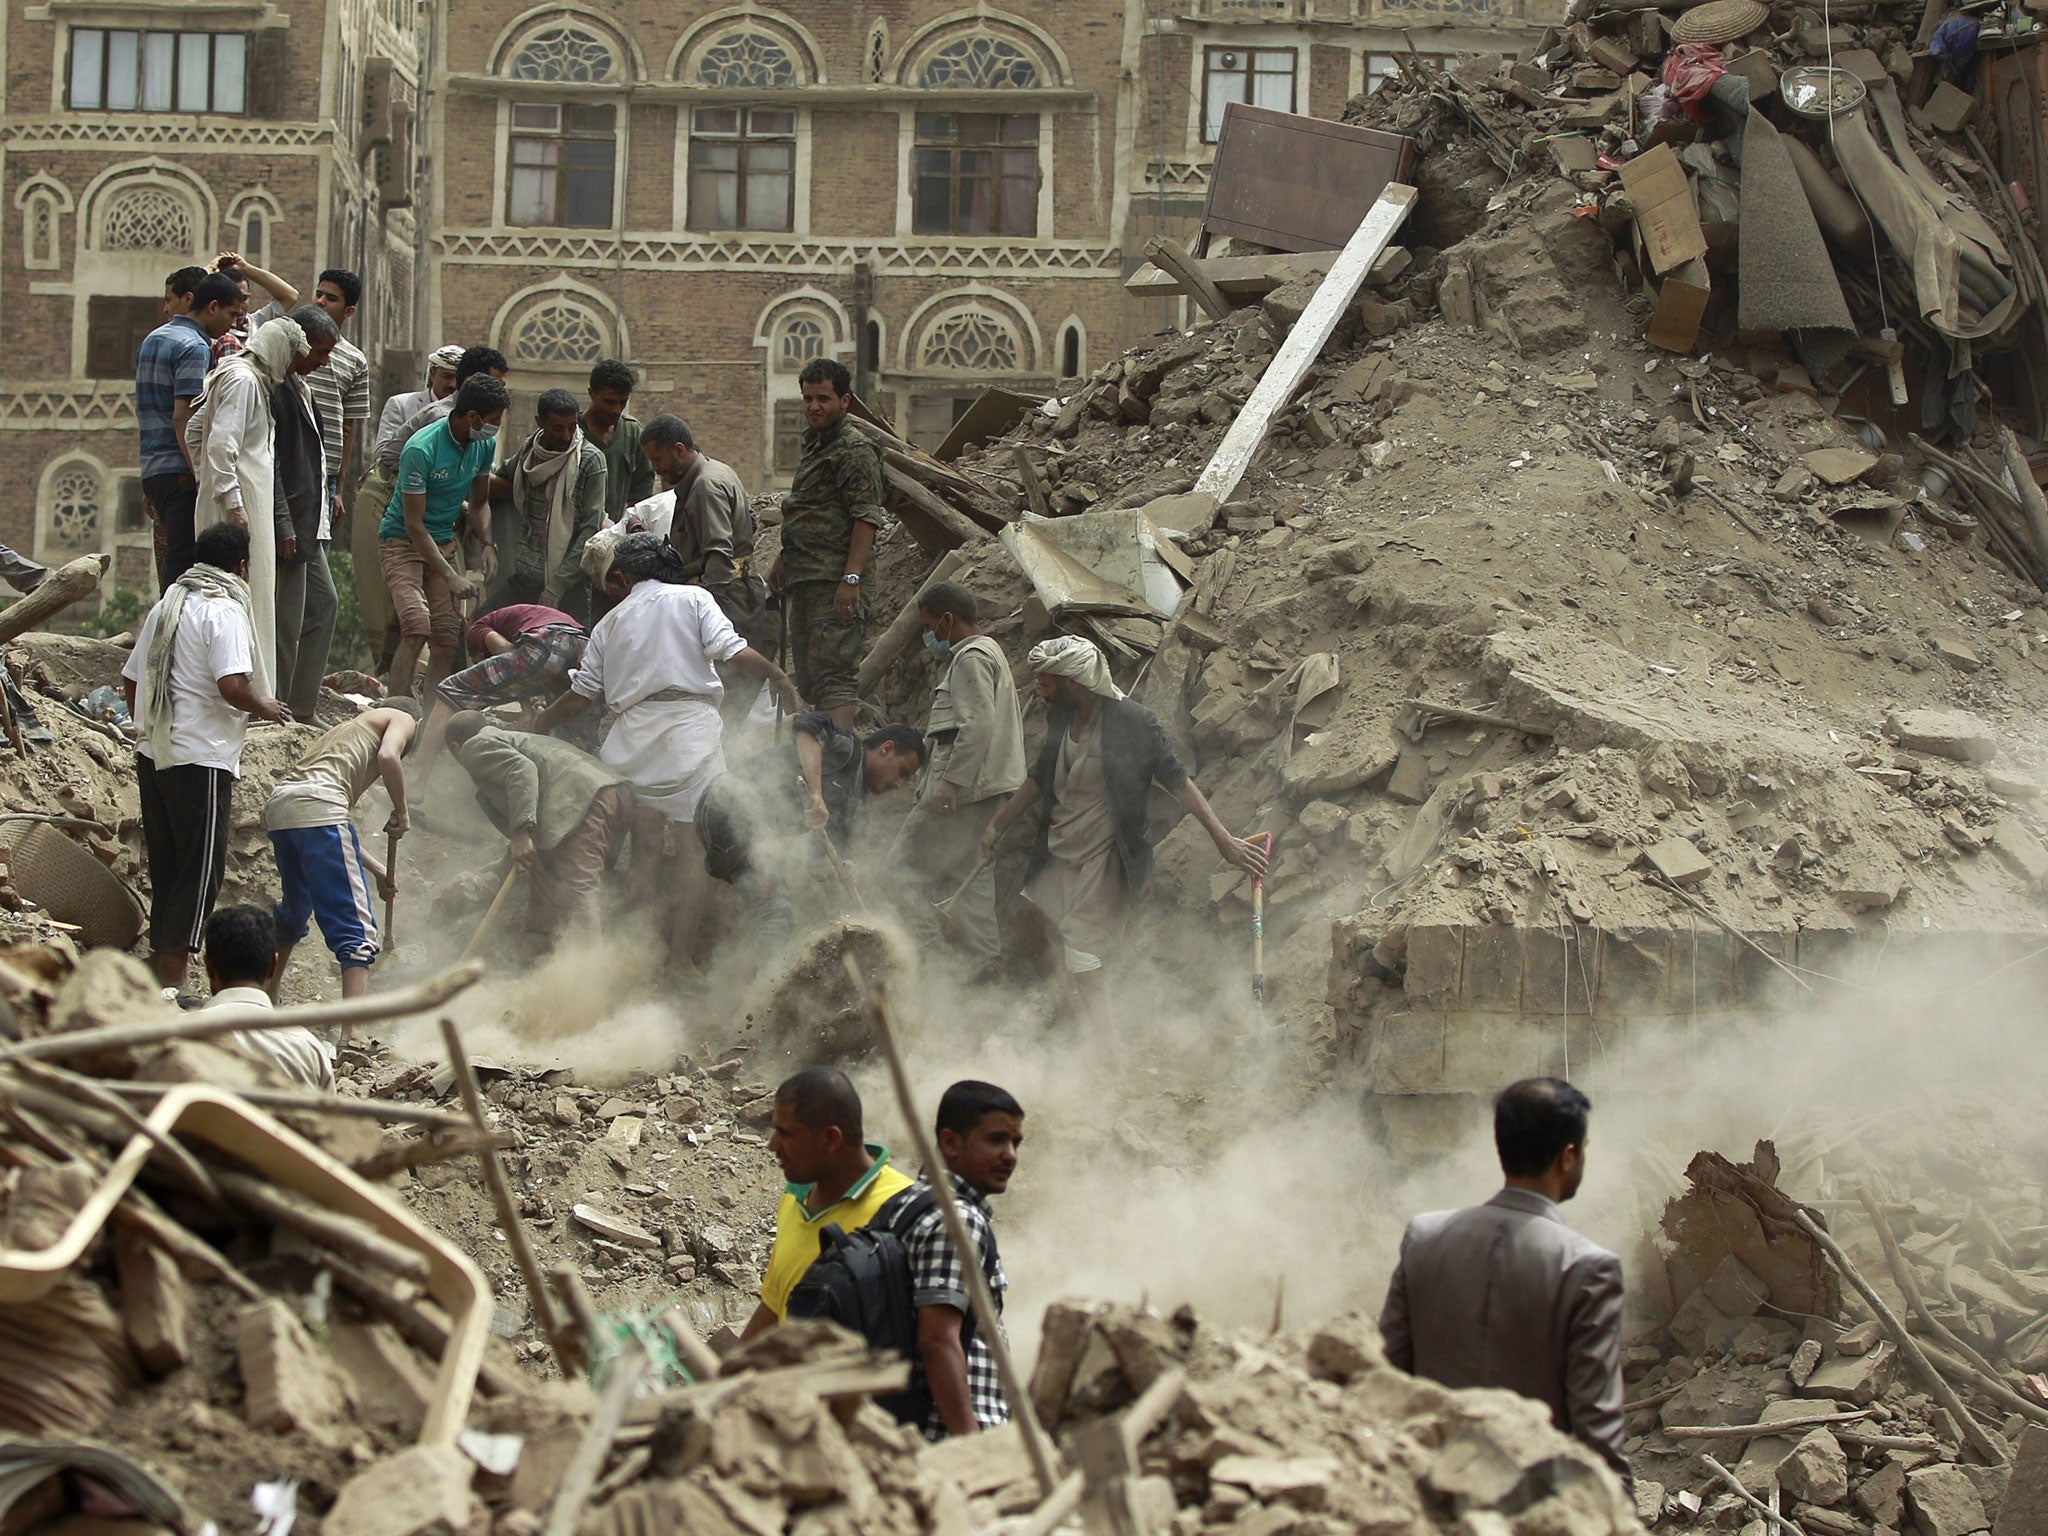 Yemen war - latest news, breaking stories and comment - The